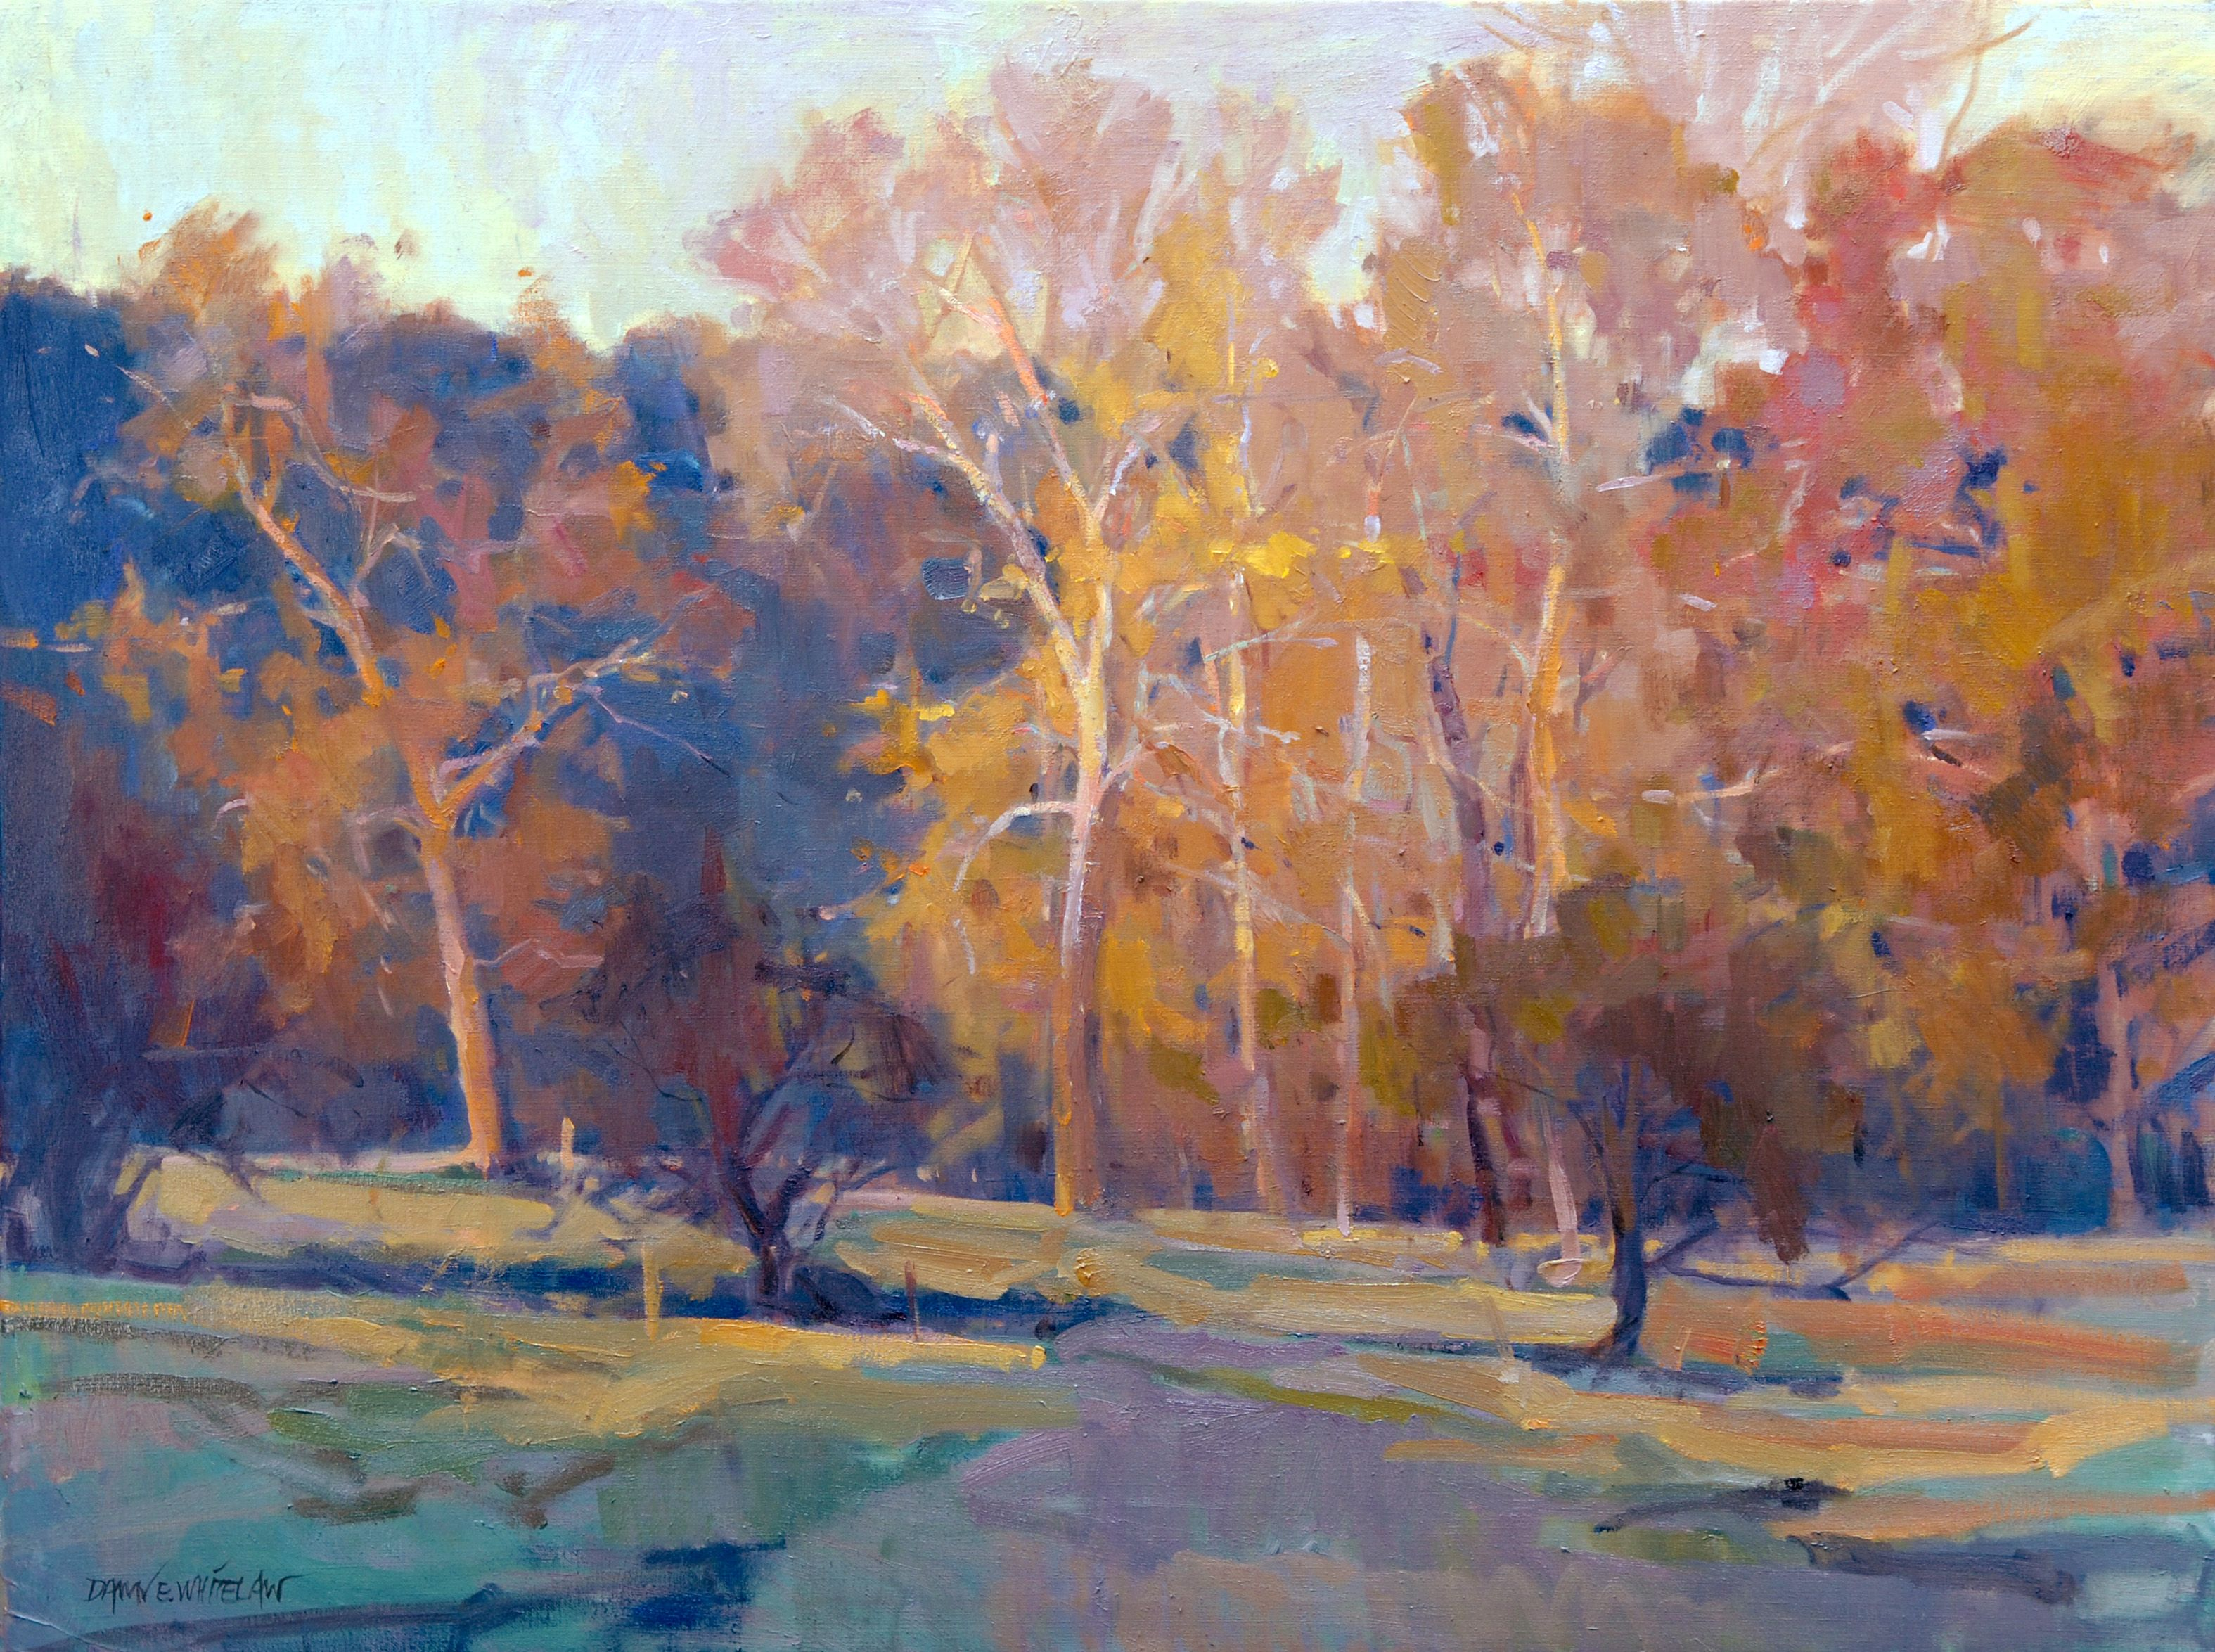 To Dance In The Light By Dawn Whitelaw Landscape Paintings Painting West Art